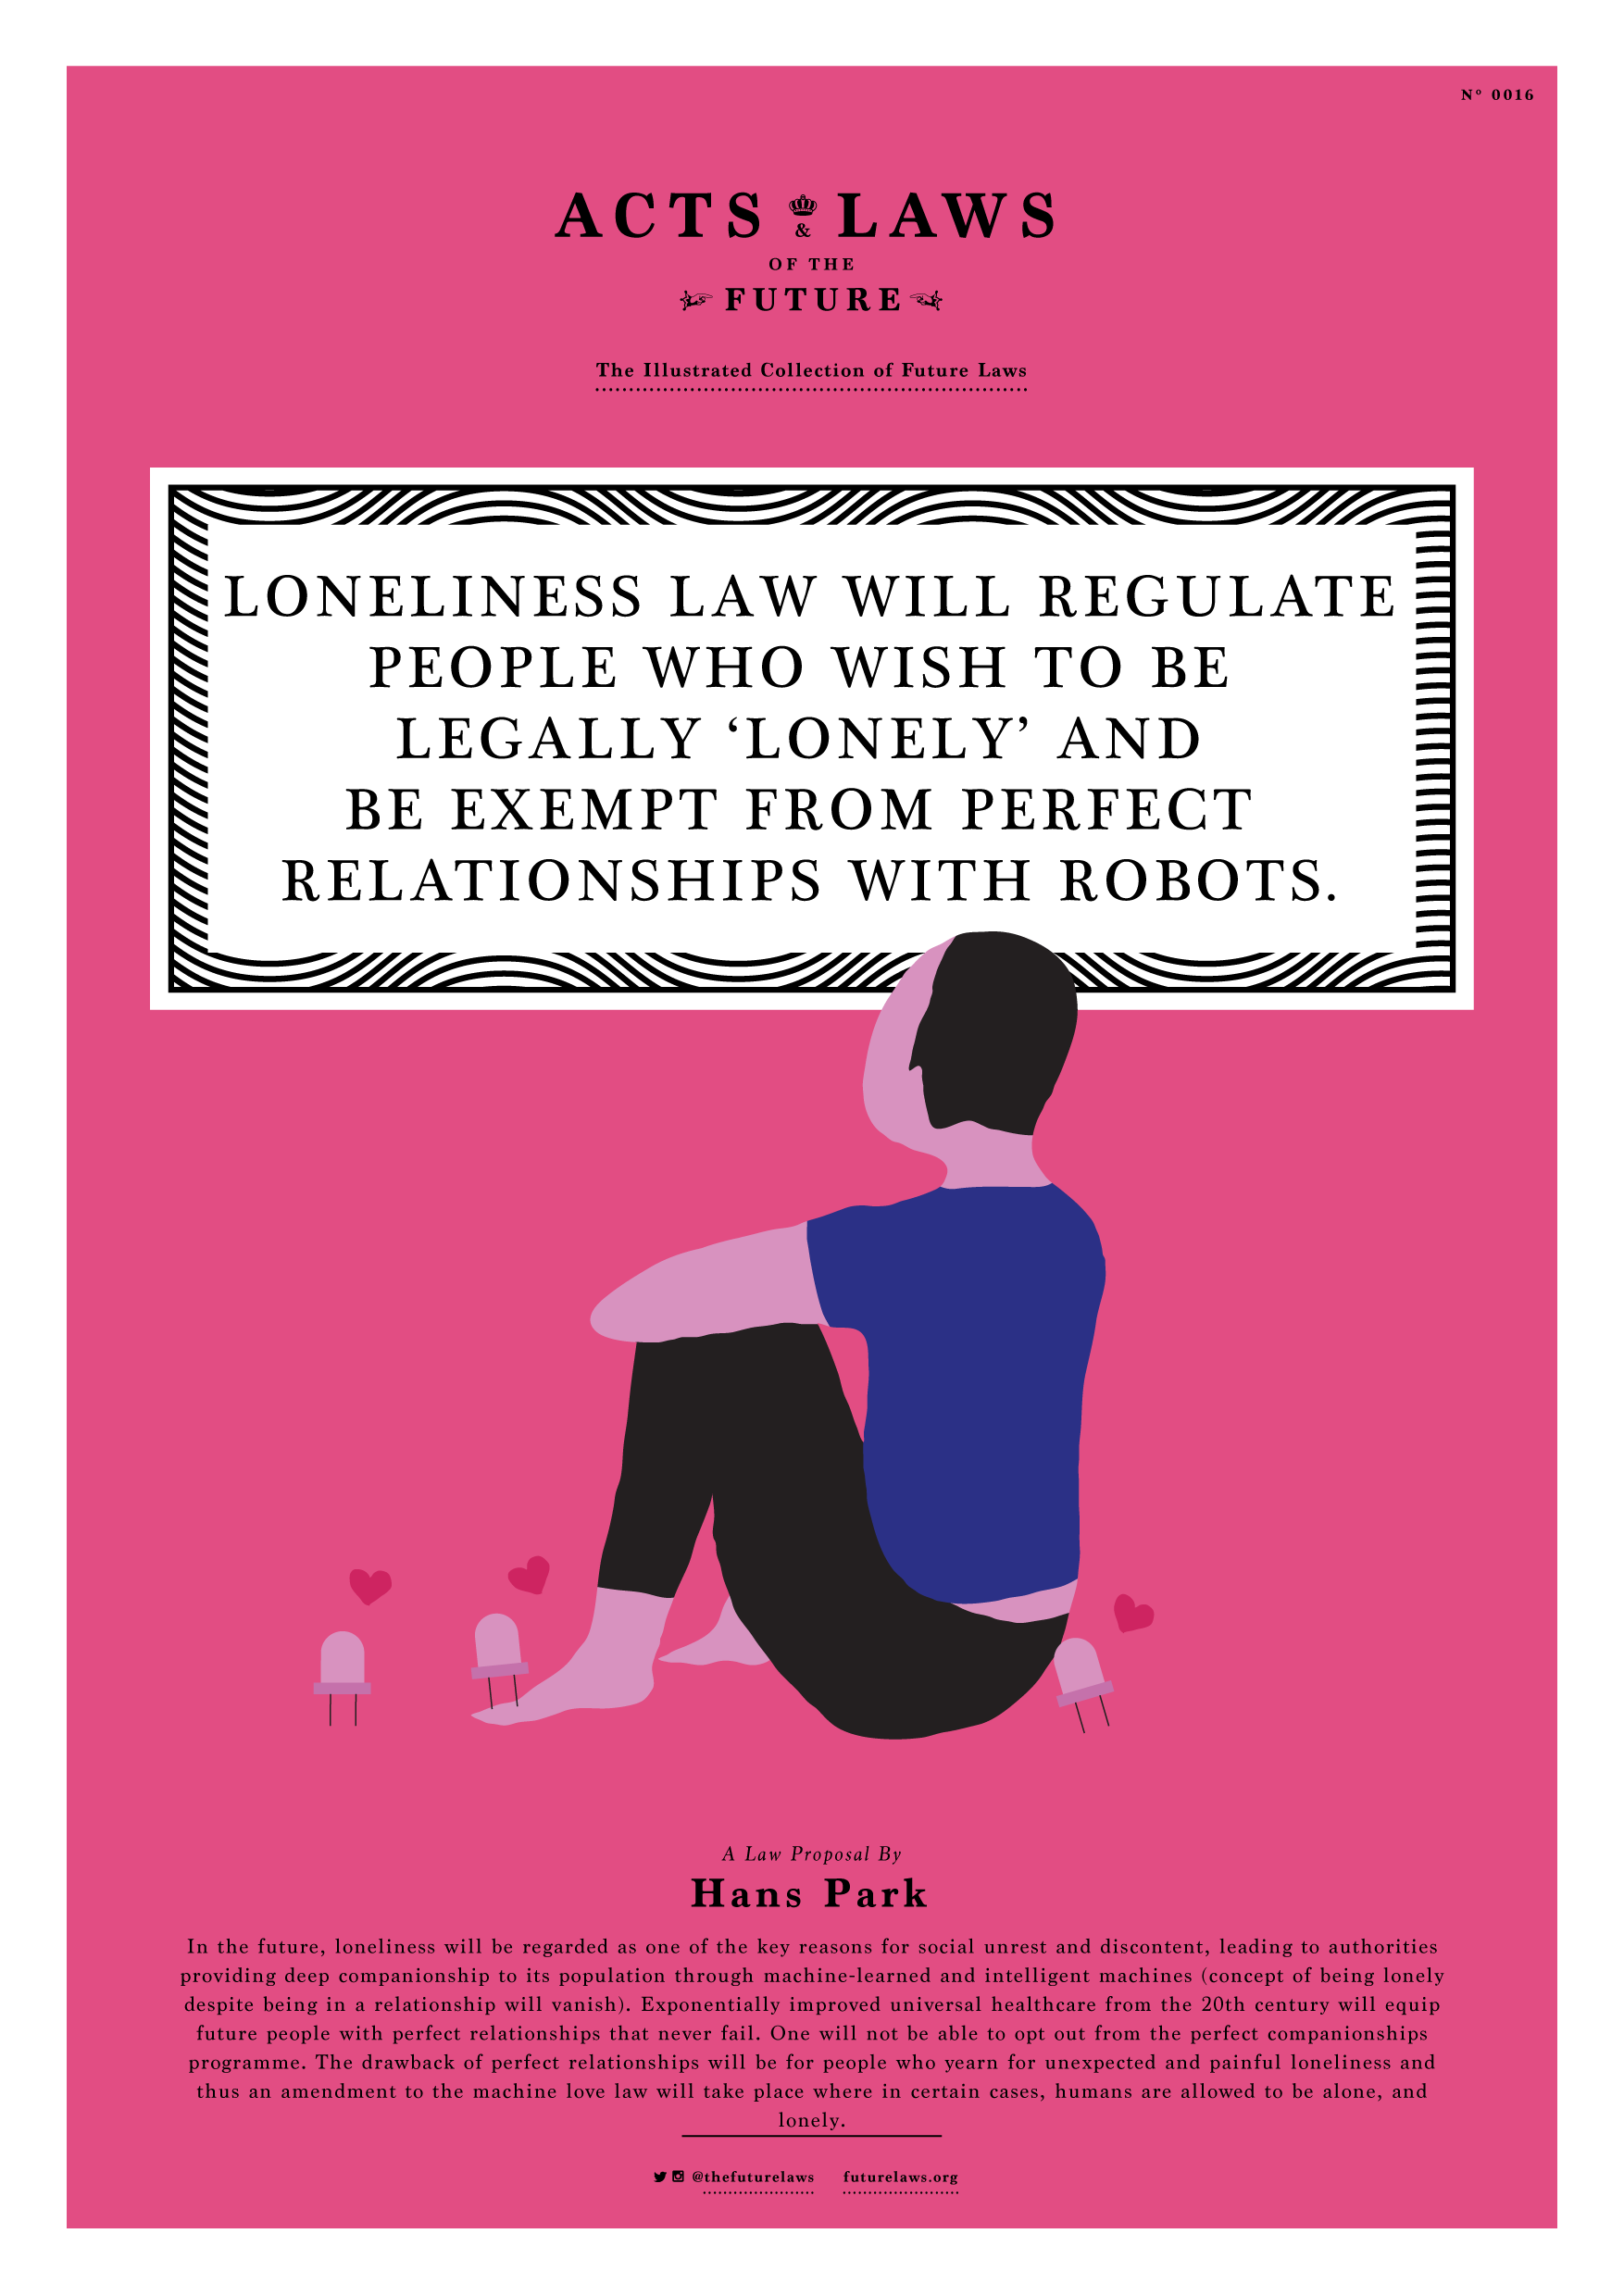 Loneliness law will regulate people who wish to be legally 'lonely' and be exempt from perfect relationships with robots.